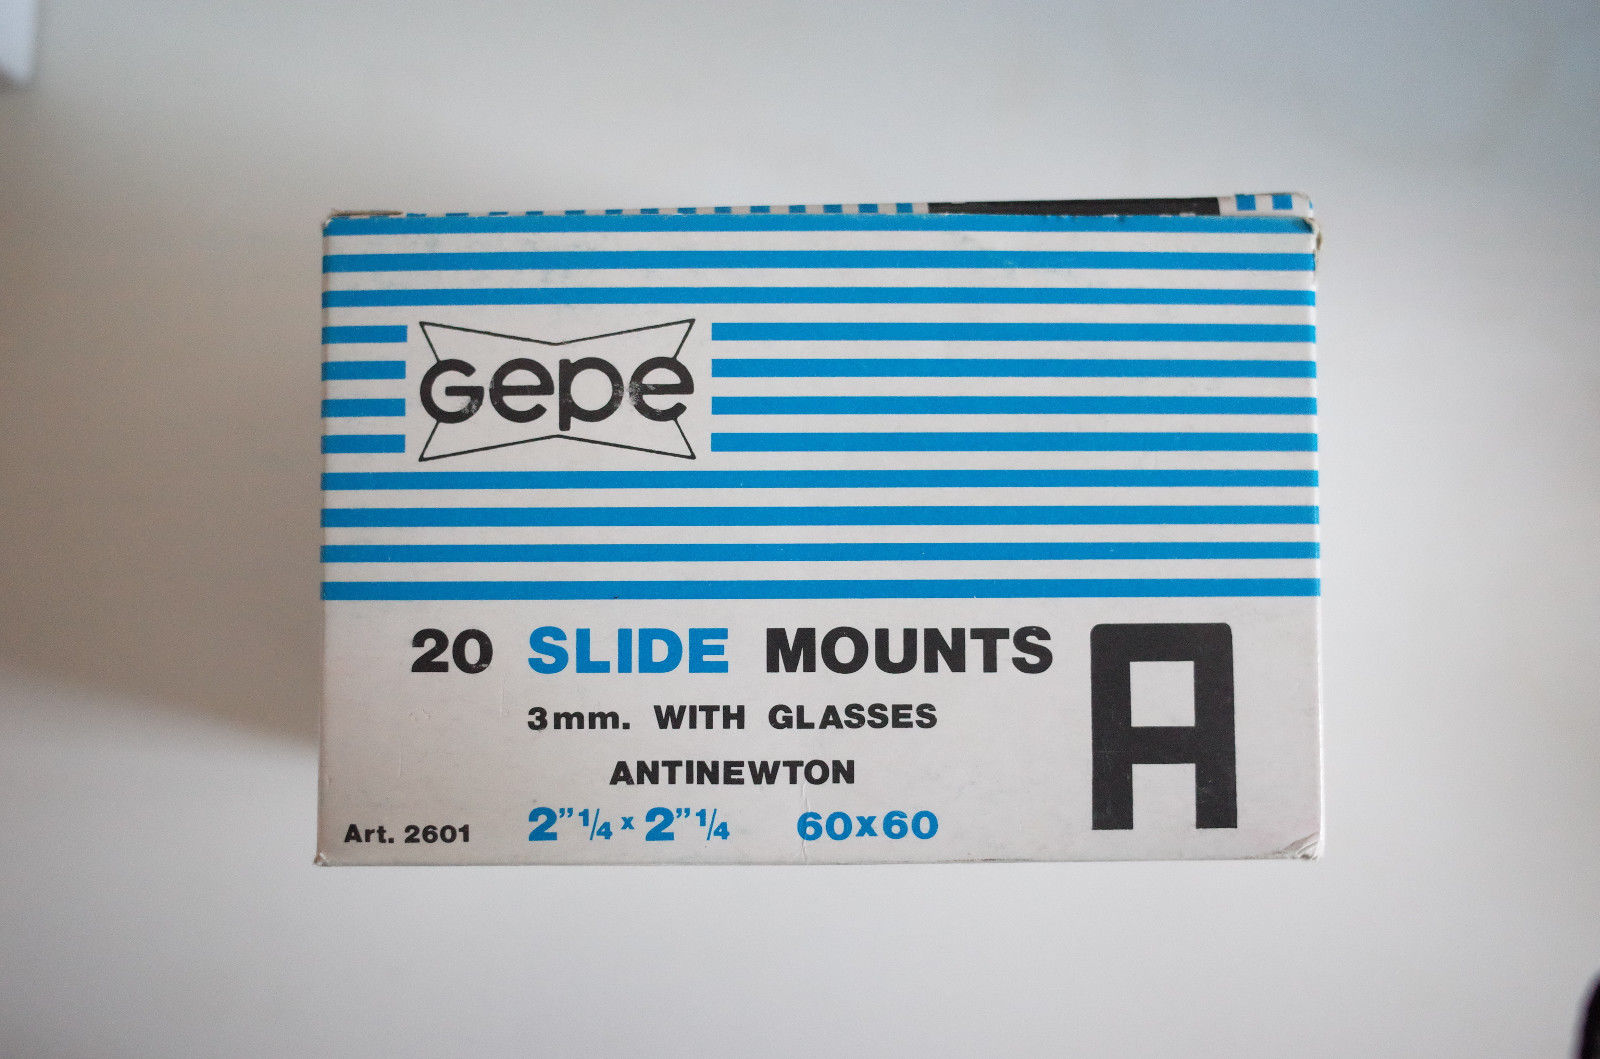 GEPE 6x6 slide mounts anti-newton glass ANR glass 20x